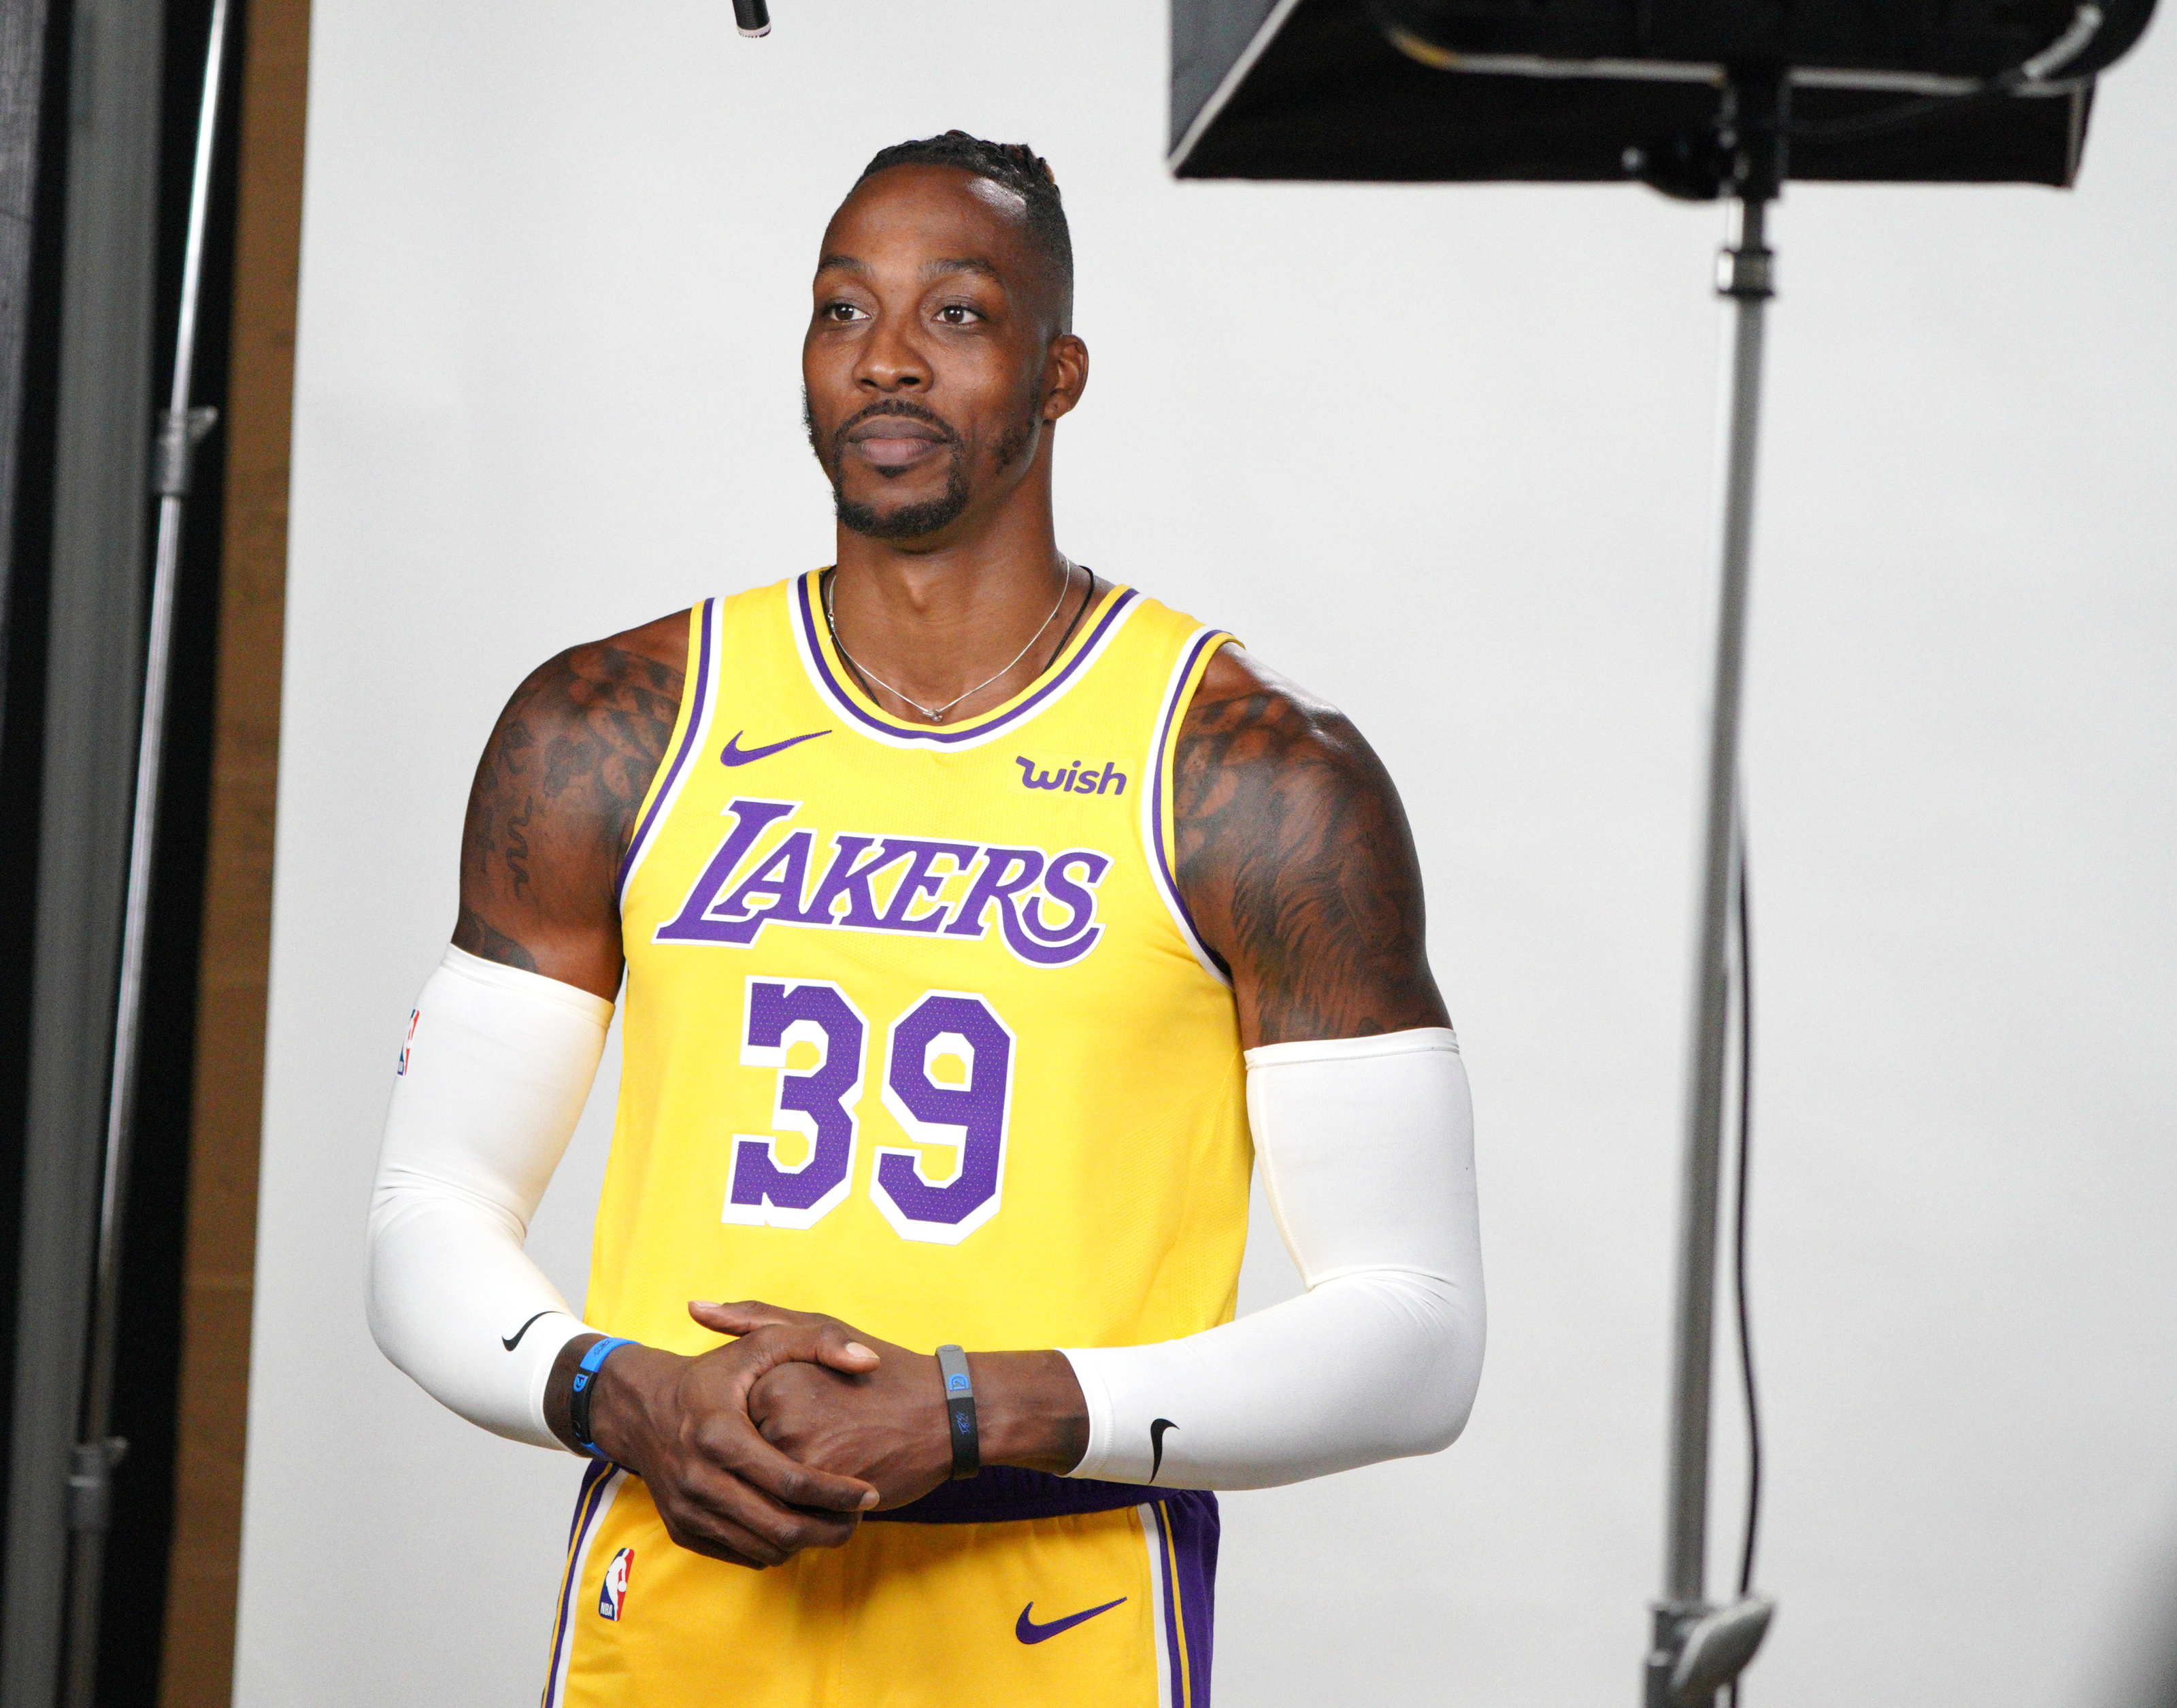 Los Angeles Lakers are impressed with Dwight Howard